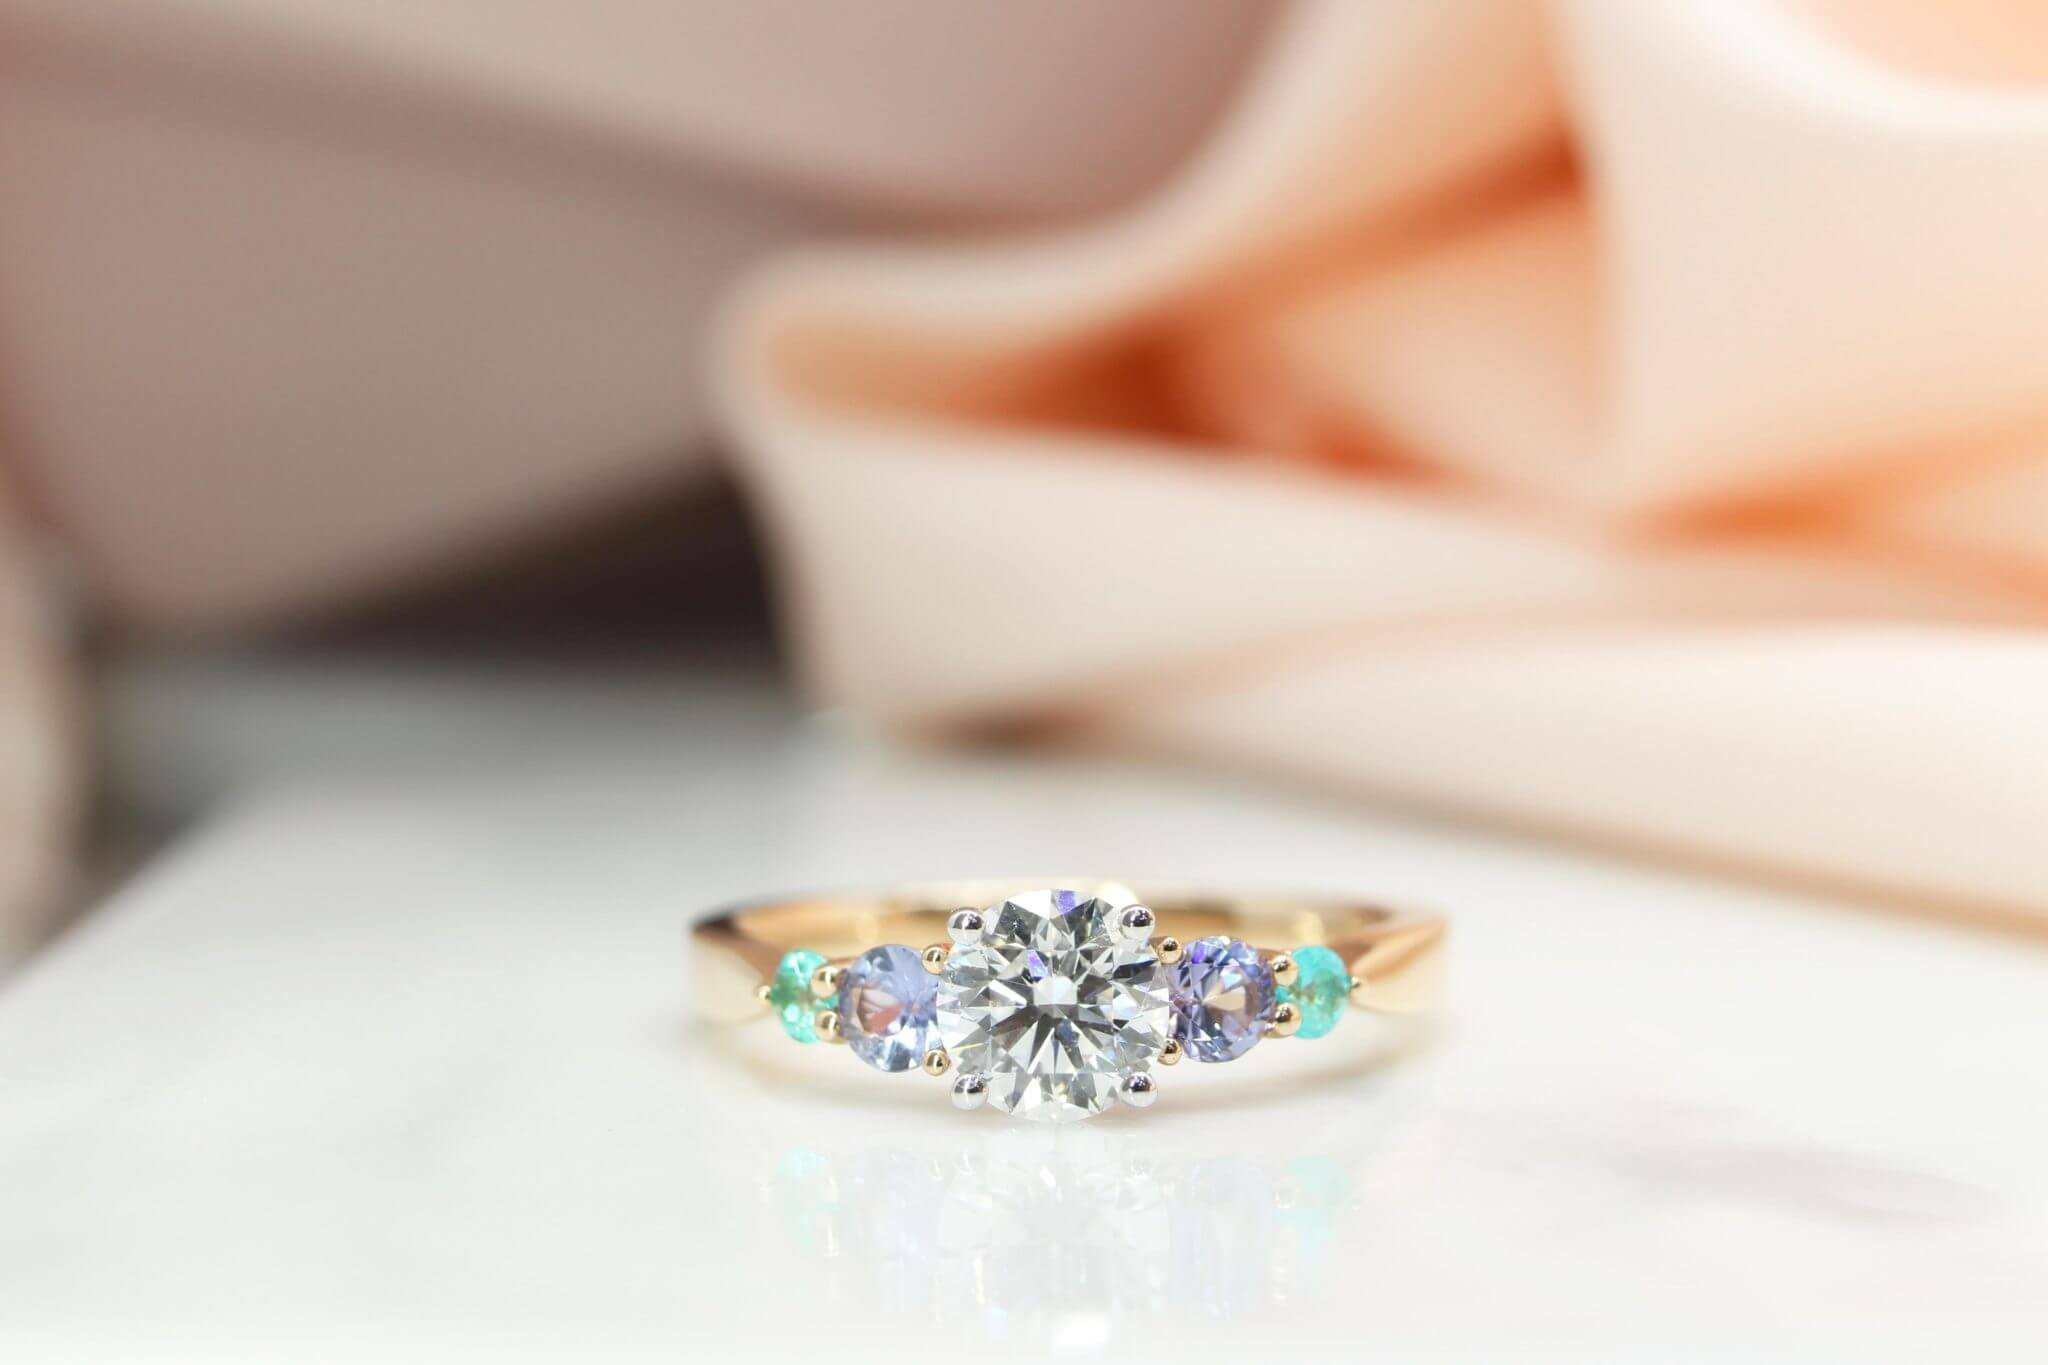 Diamond with Gemstone Engagement Ring customised with Paraiba Tourmaline and blue Sapphire custom made in rose gold and white gold band | Local Singapore Jeweller in Customised Engagement Ring with Diamond and coloured gemstone paraiba and sapphire